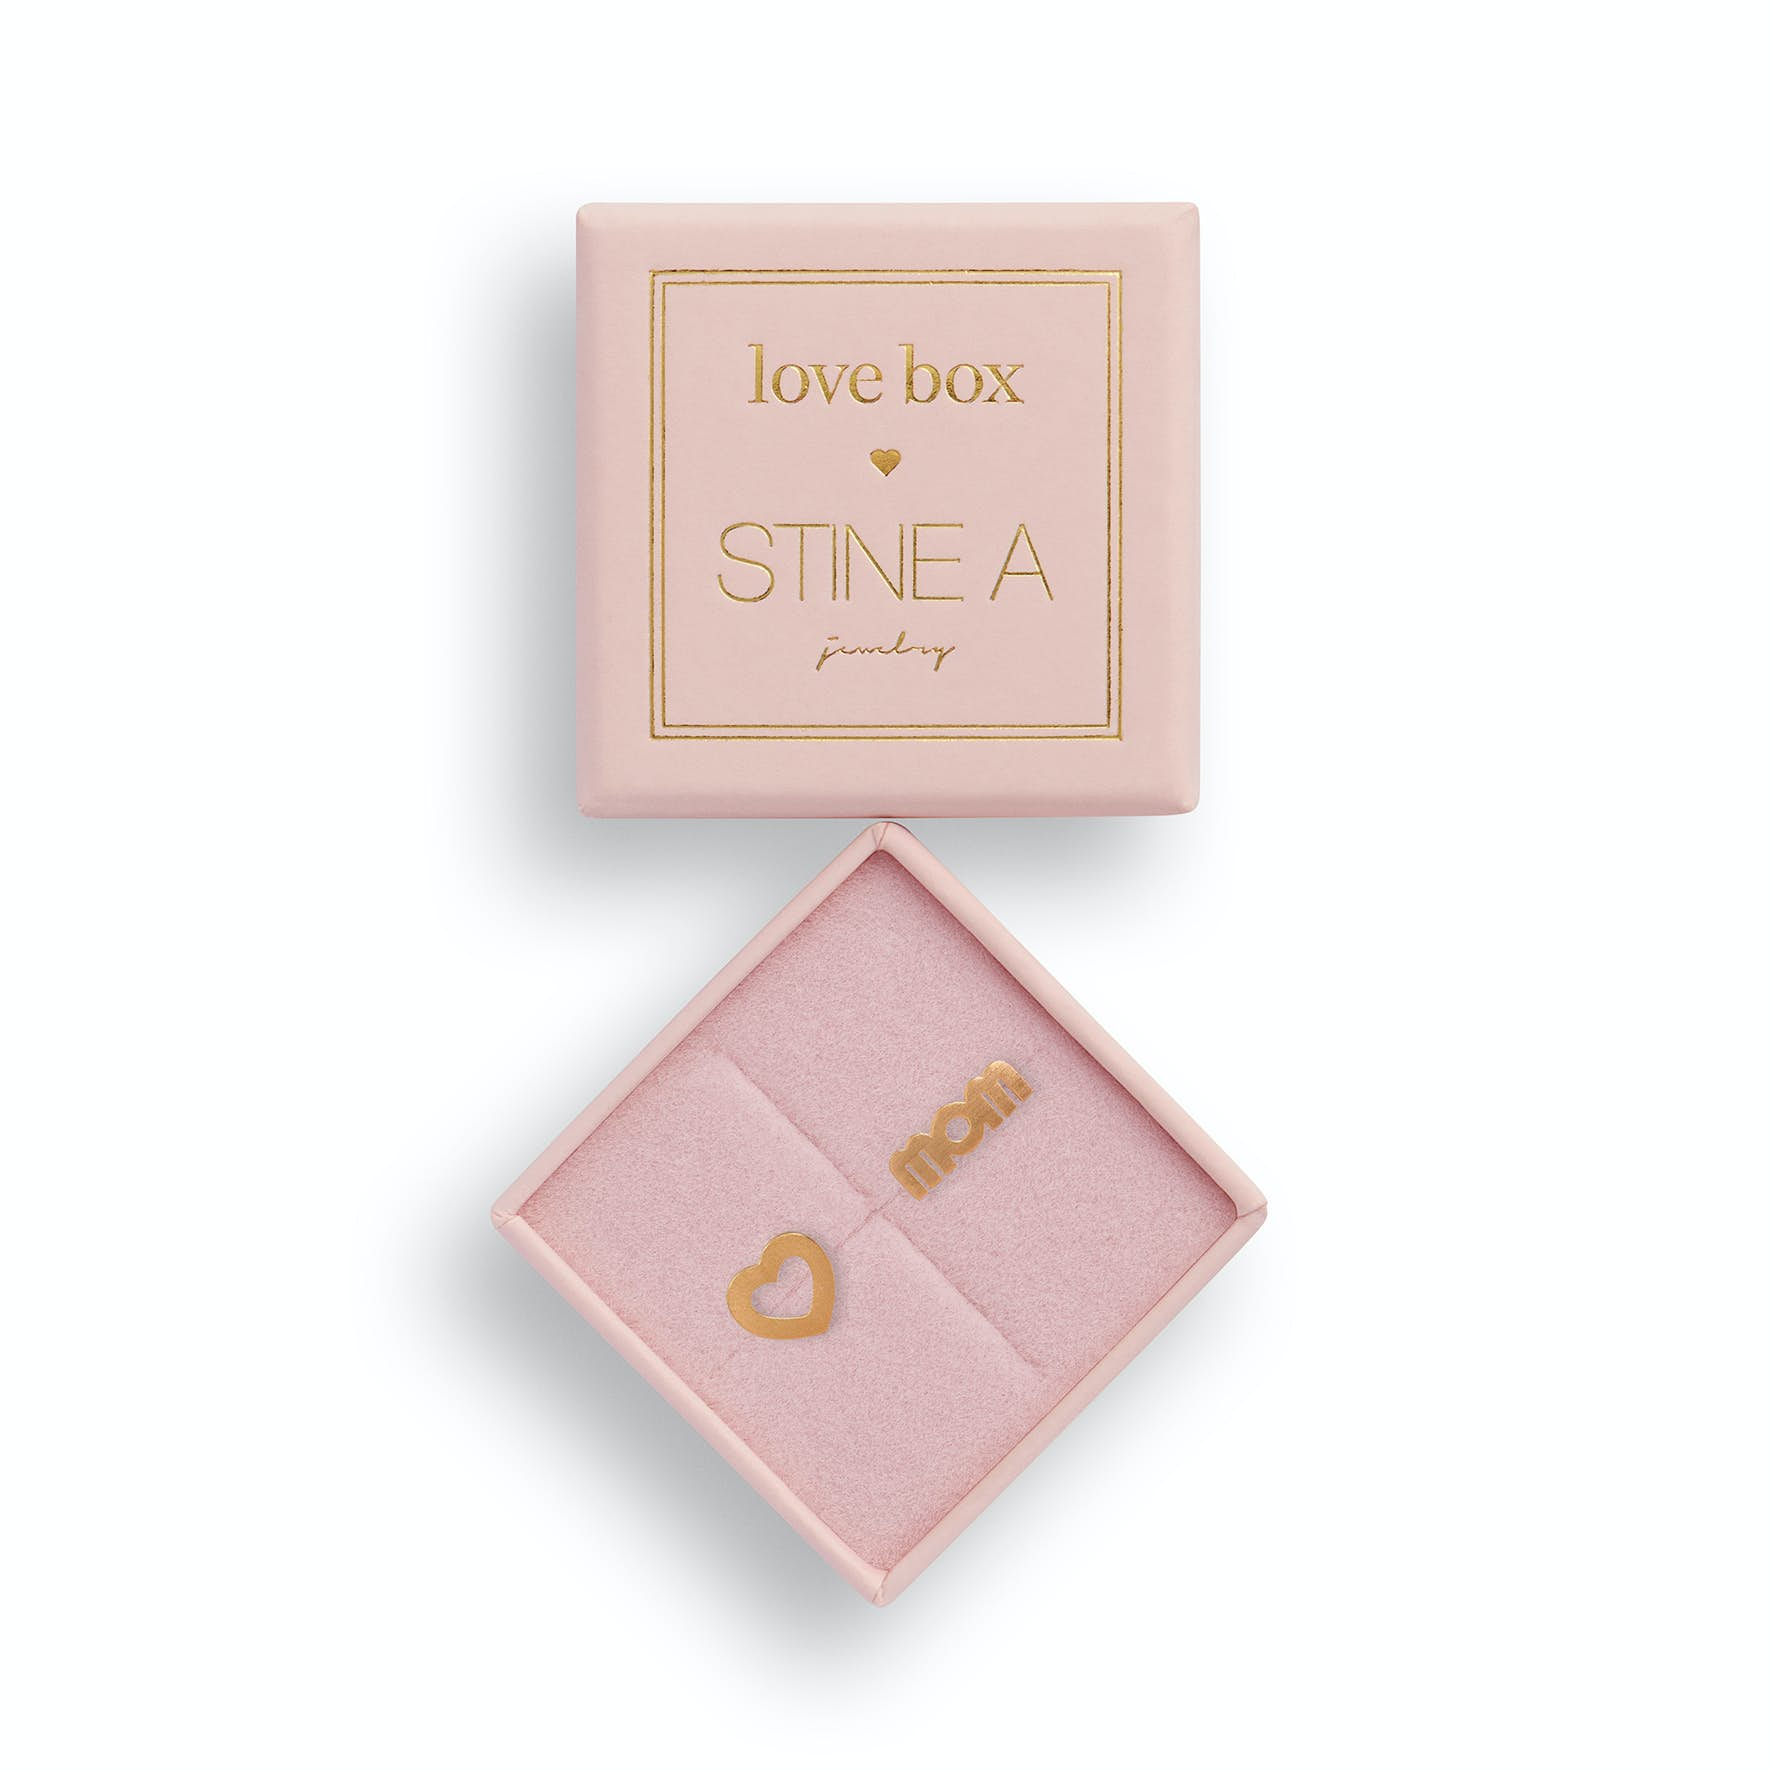 Love Box 102 from STINE A Jewelry in Goldplated-Silver Sterling 925